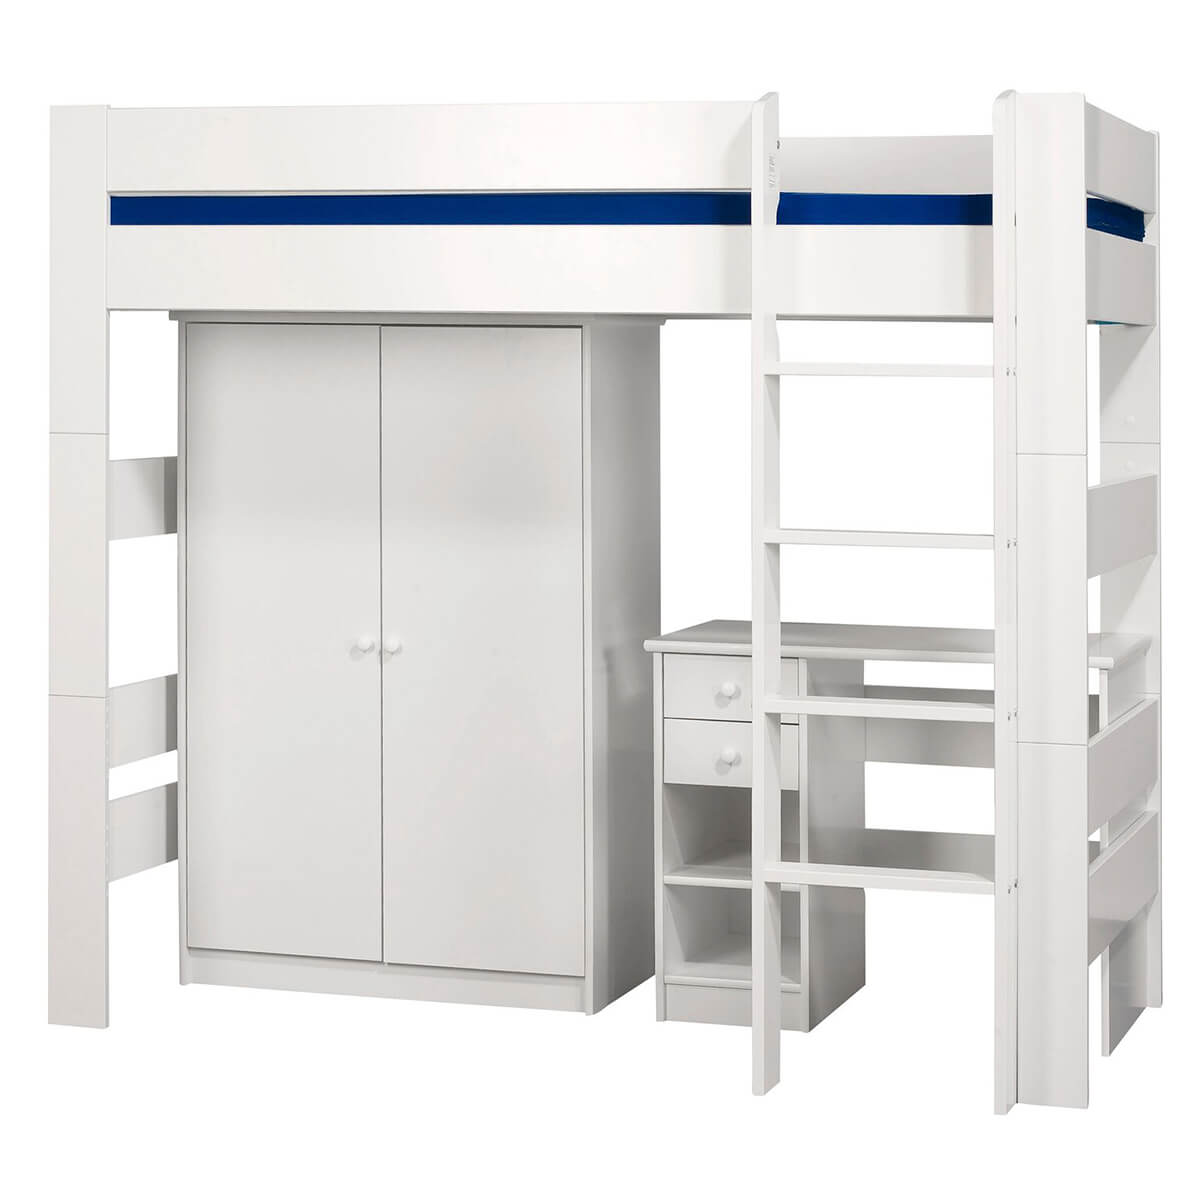 London Childrens High Sleeper Bed With Storage Kids Beds